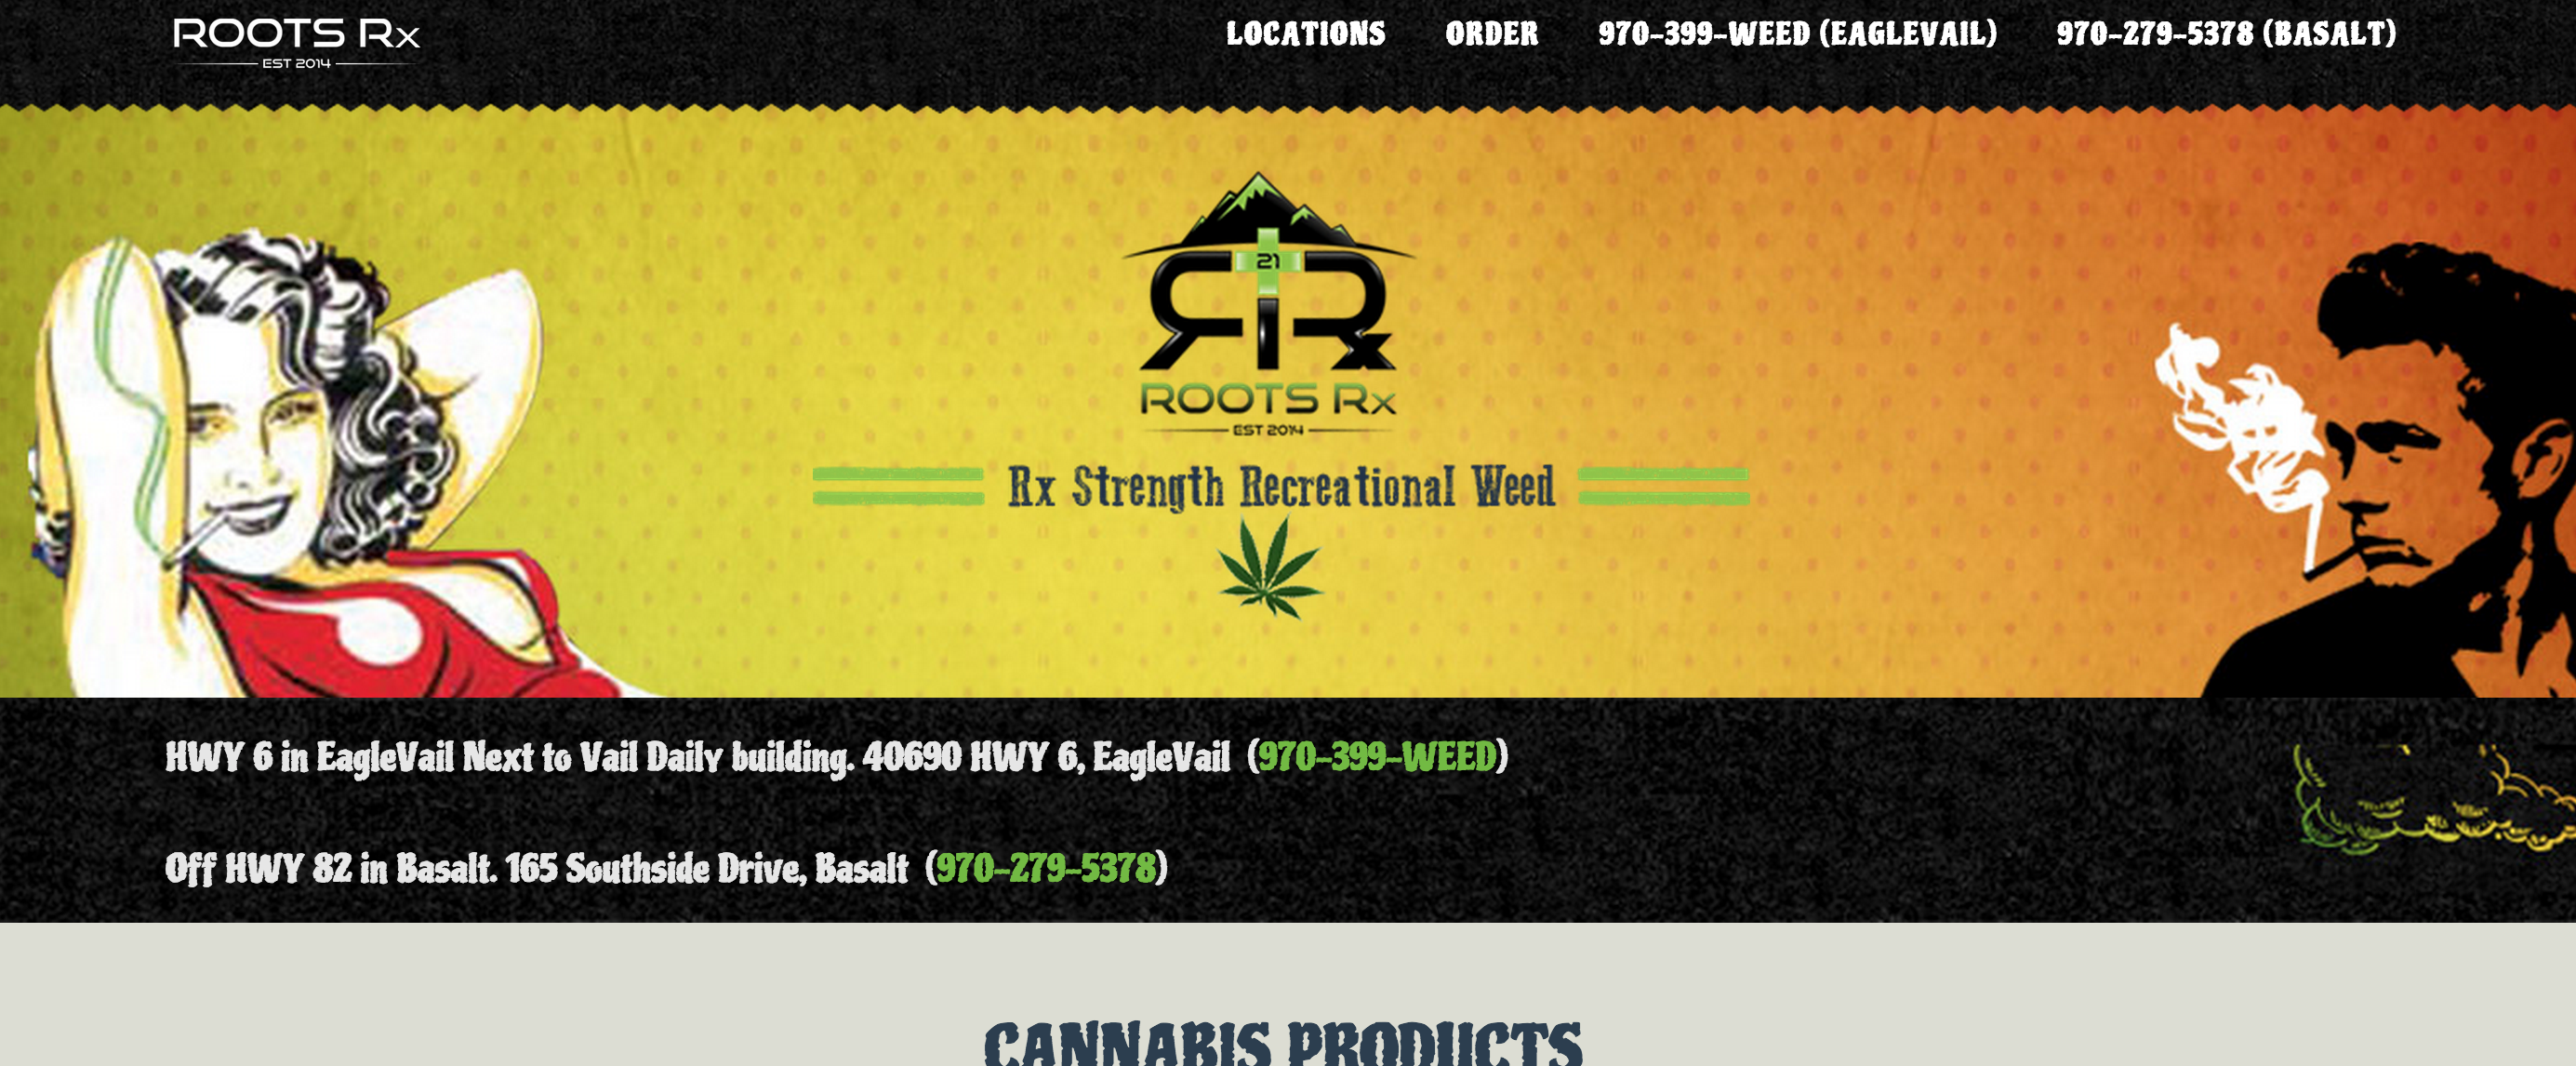 roots-rx-website